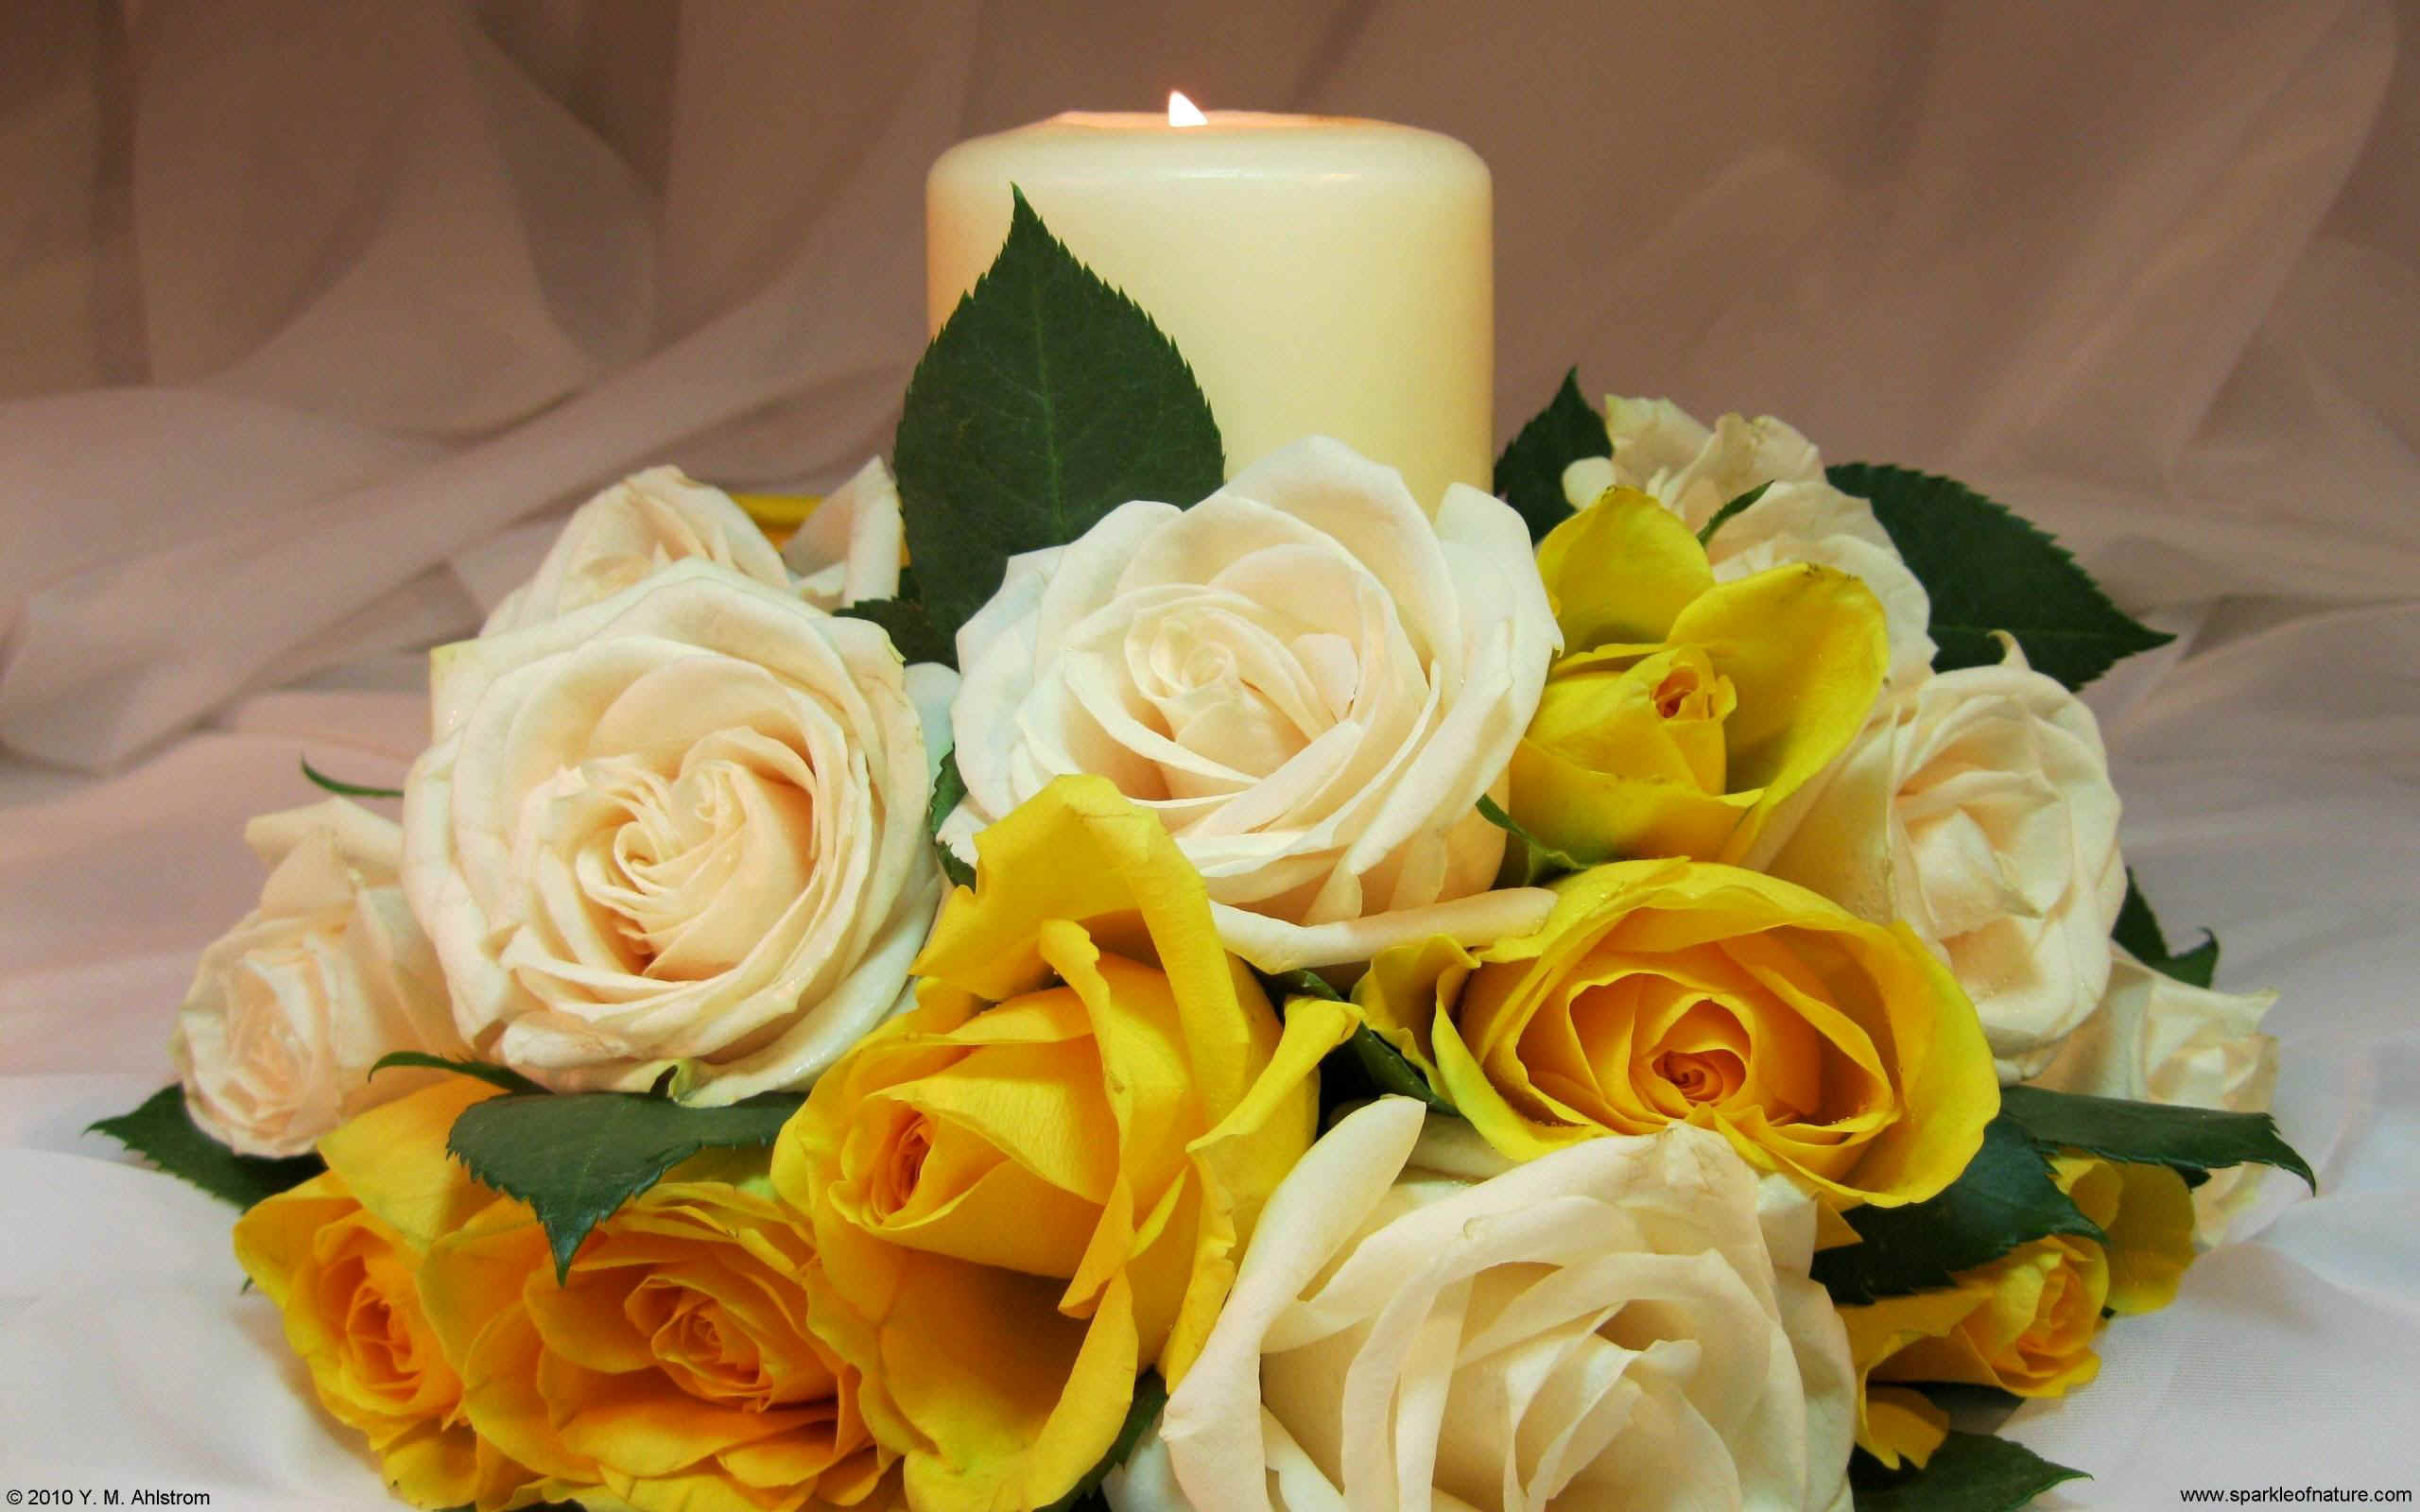 21514 yellow rose candle w 2560x1600.jpg (350712 bytes)